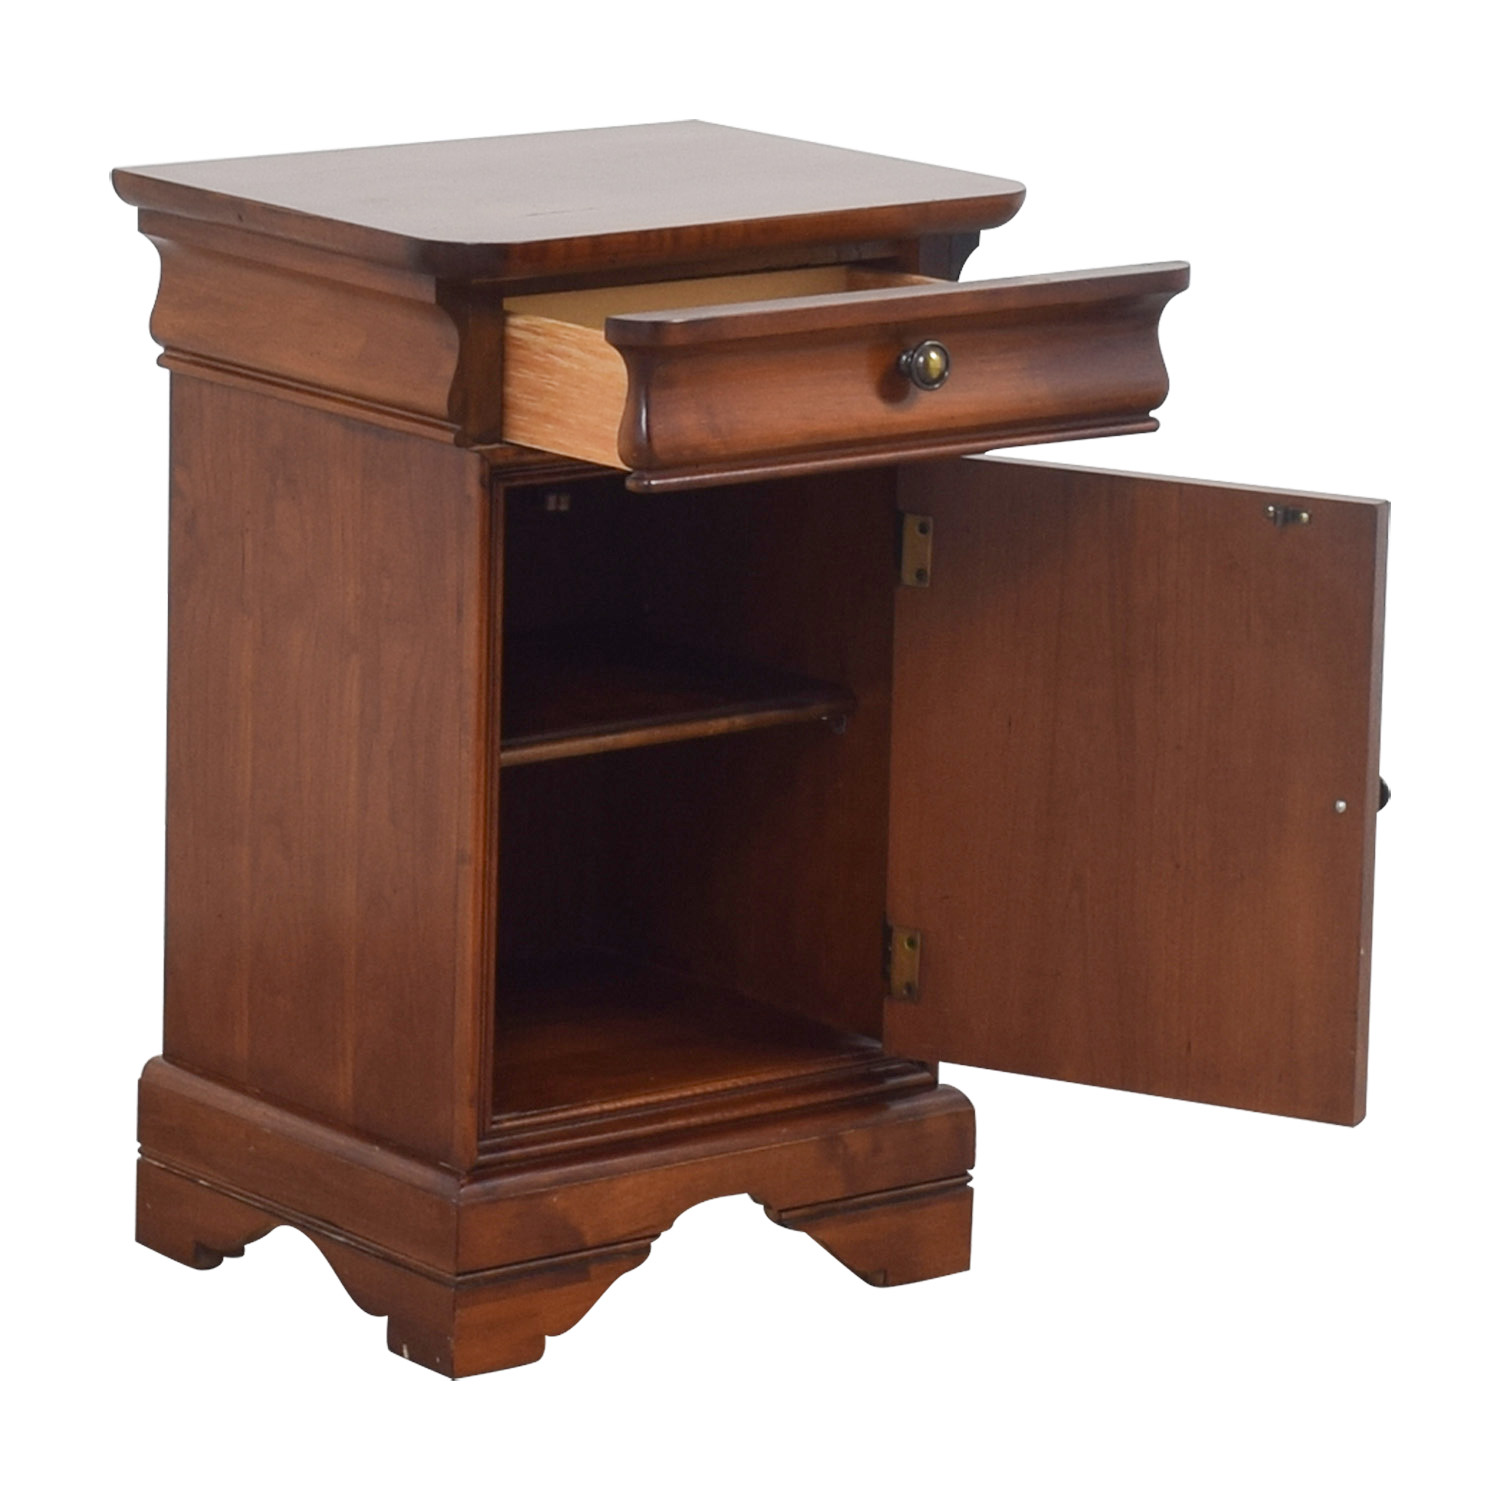 Antique Wood Single Drawer End Table